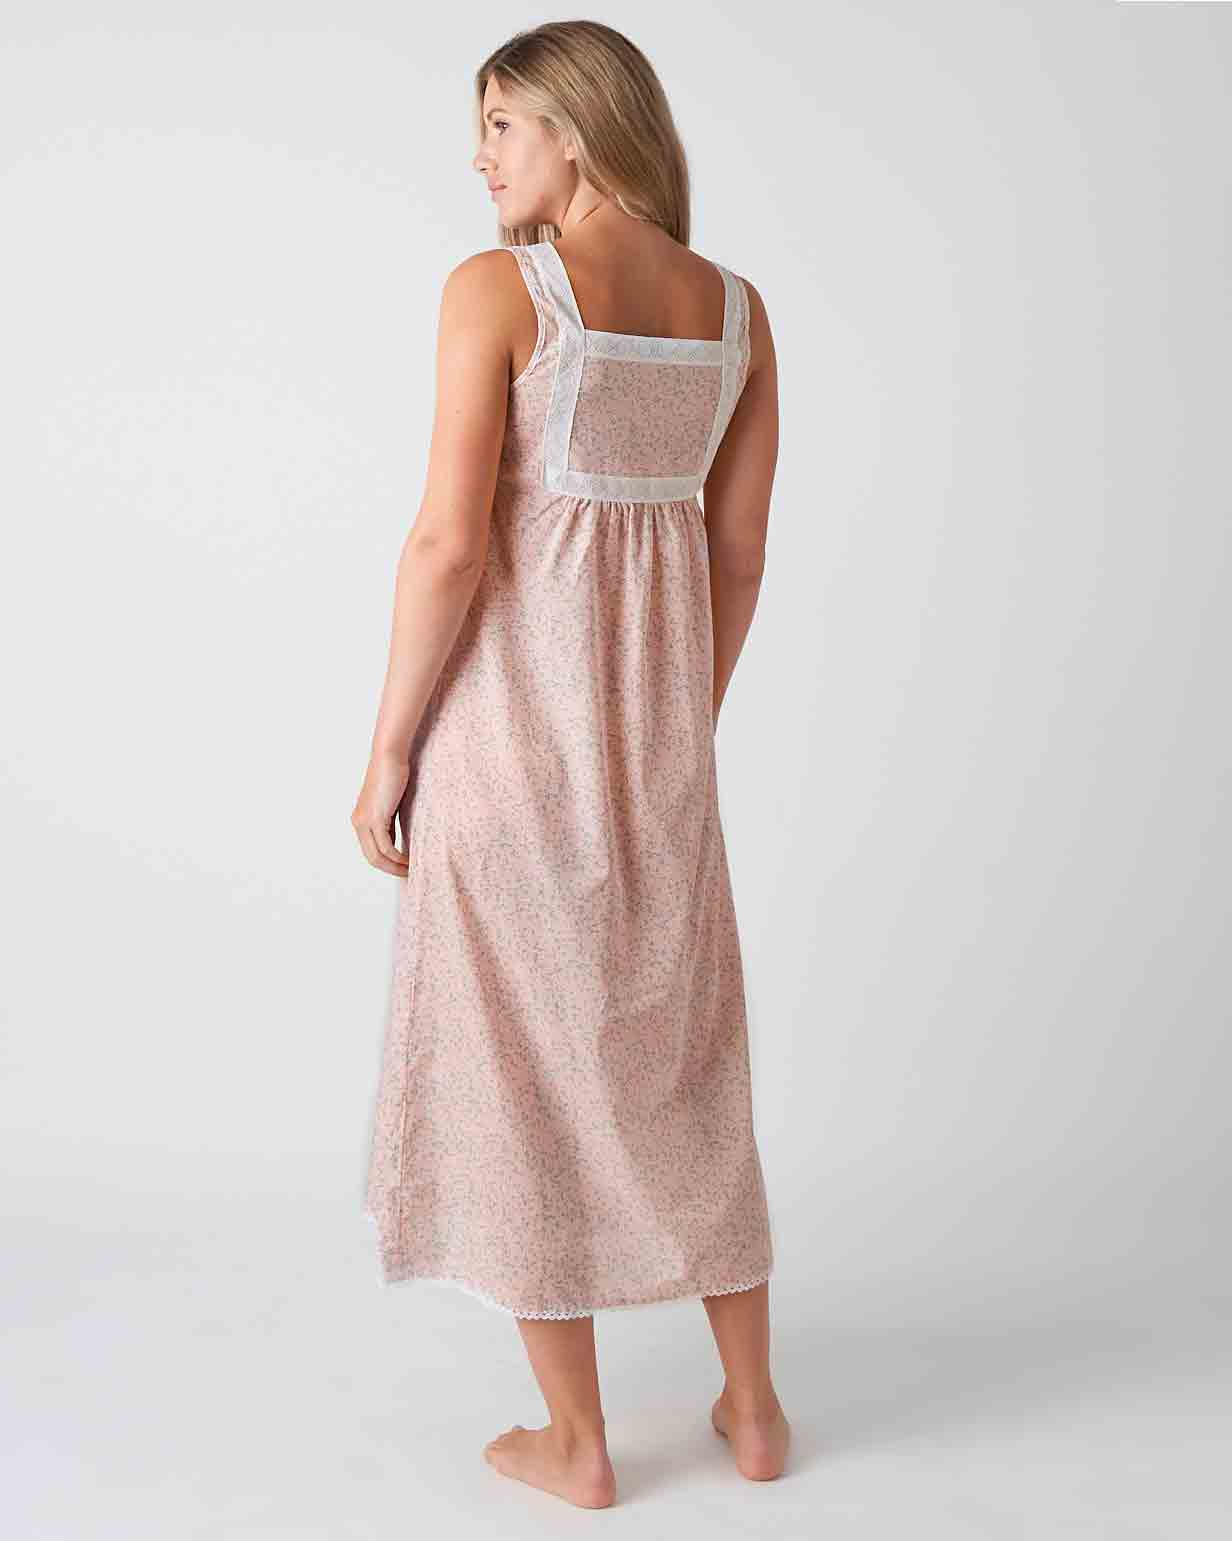 Women's Eliza Pink Blossom Nightdress | Bonsoir of London